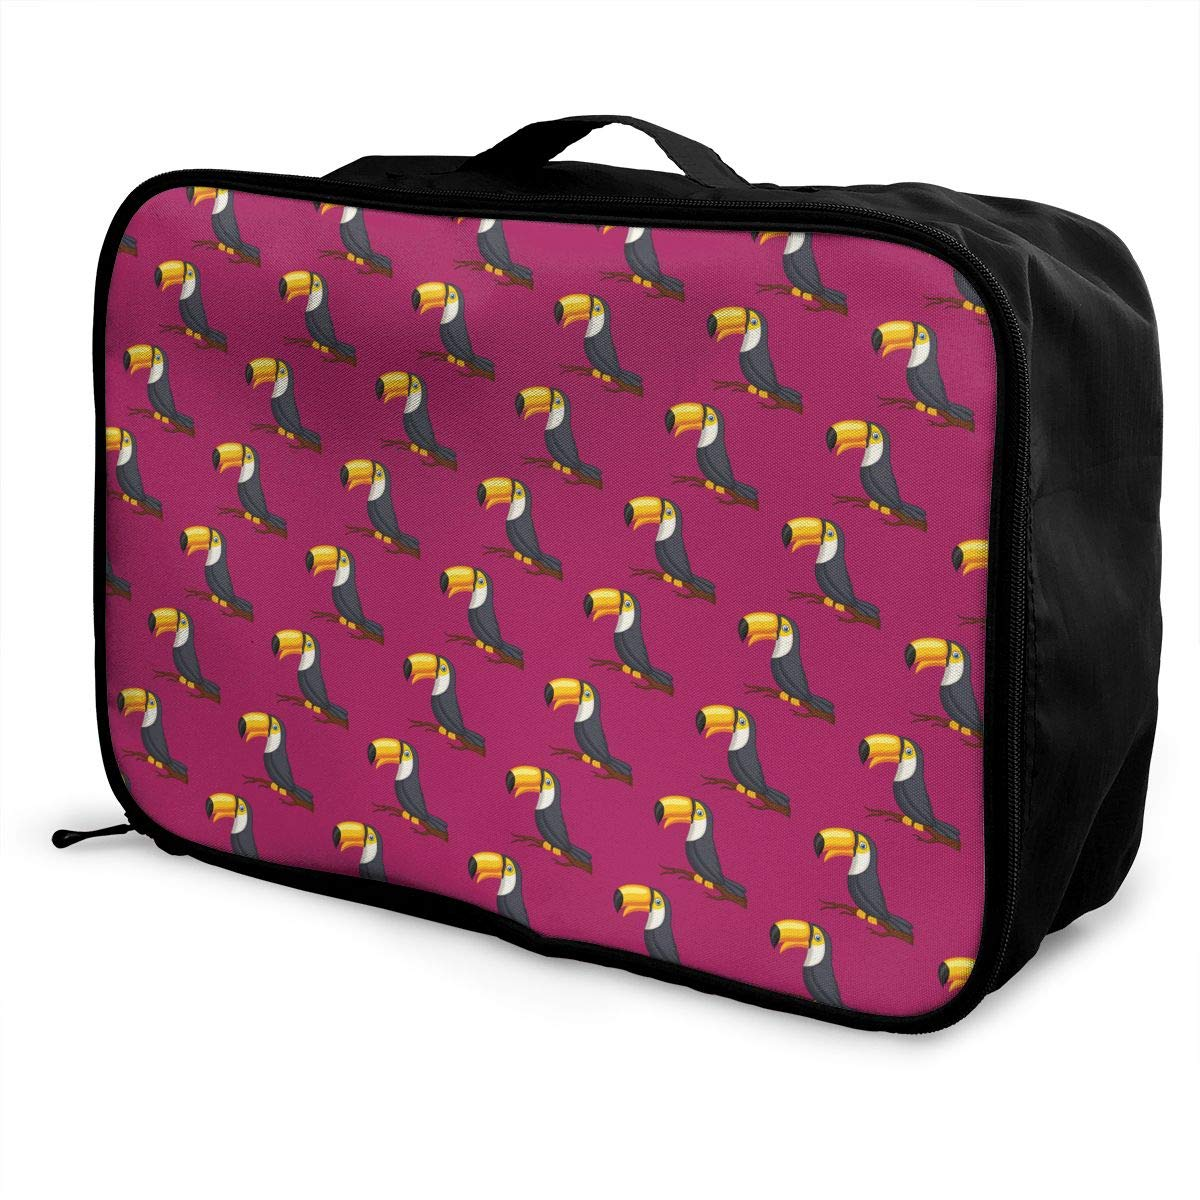 YueLJB Toco Toucan Birds Lightweight Large Capacity Portable Luggage Bag Travel Duffel Bag Storage Carry Luggage Duffle Tote Bag